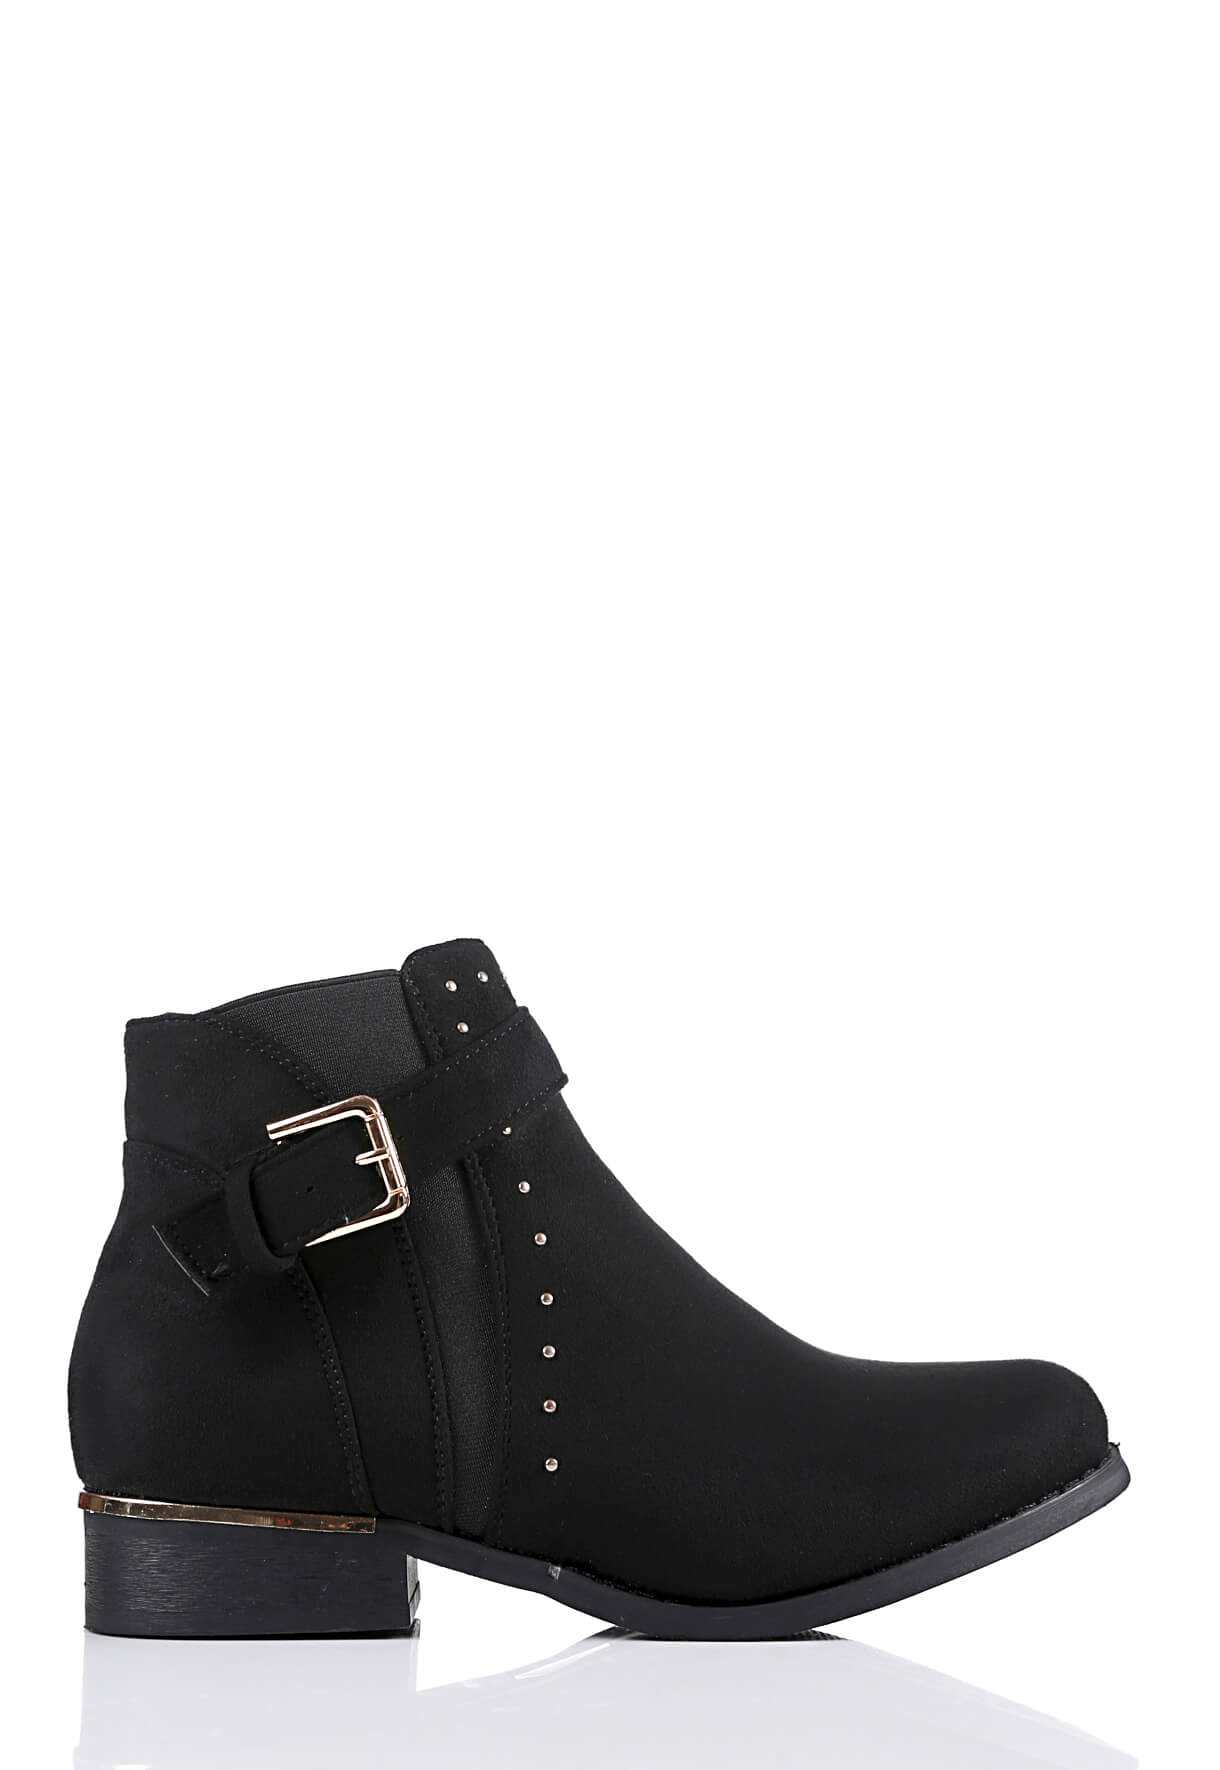 Wide Fit Black Suede Buckle & Stud Detail Boots